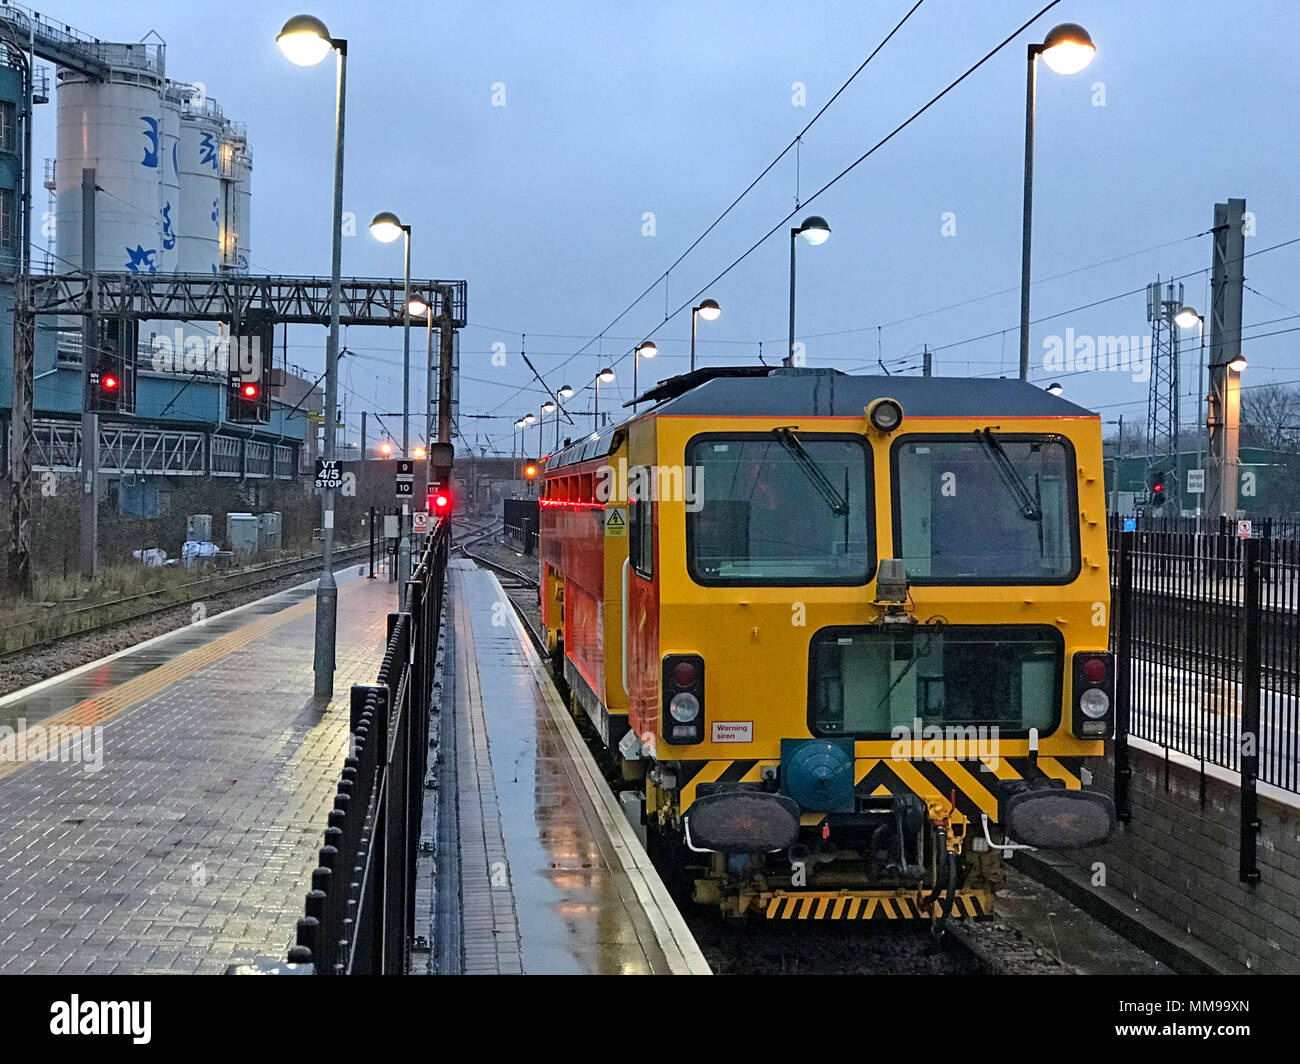 Railway track maintenance engine vehicle, Warrington Bank Quay station at dusk, Cheshire, England, UK, dusk, winter - Stock Image